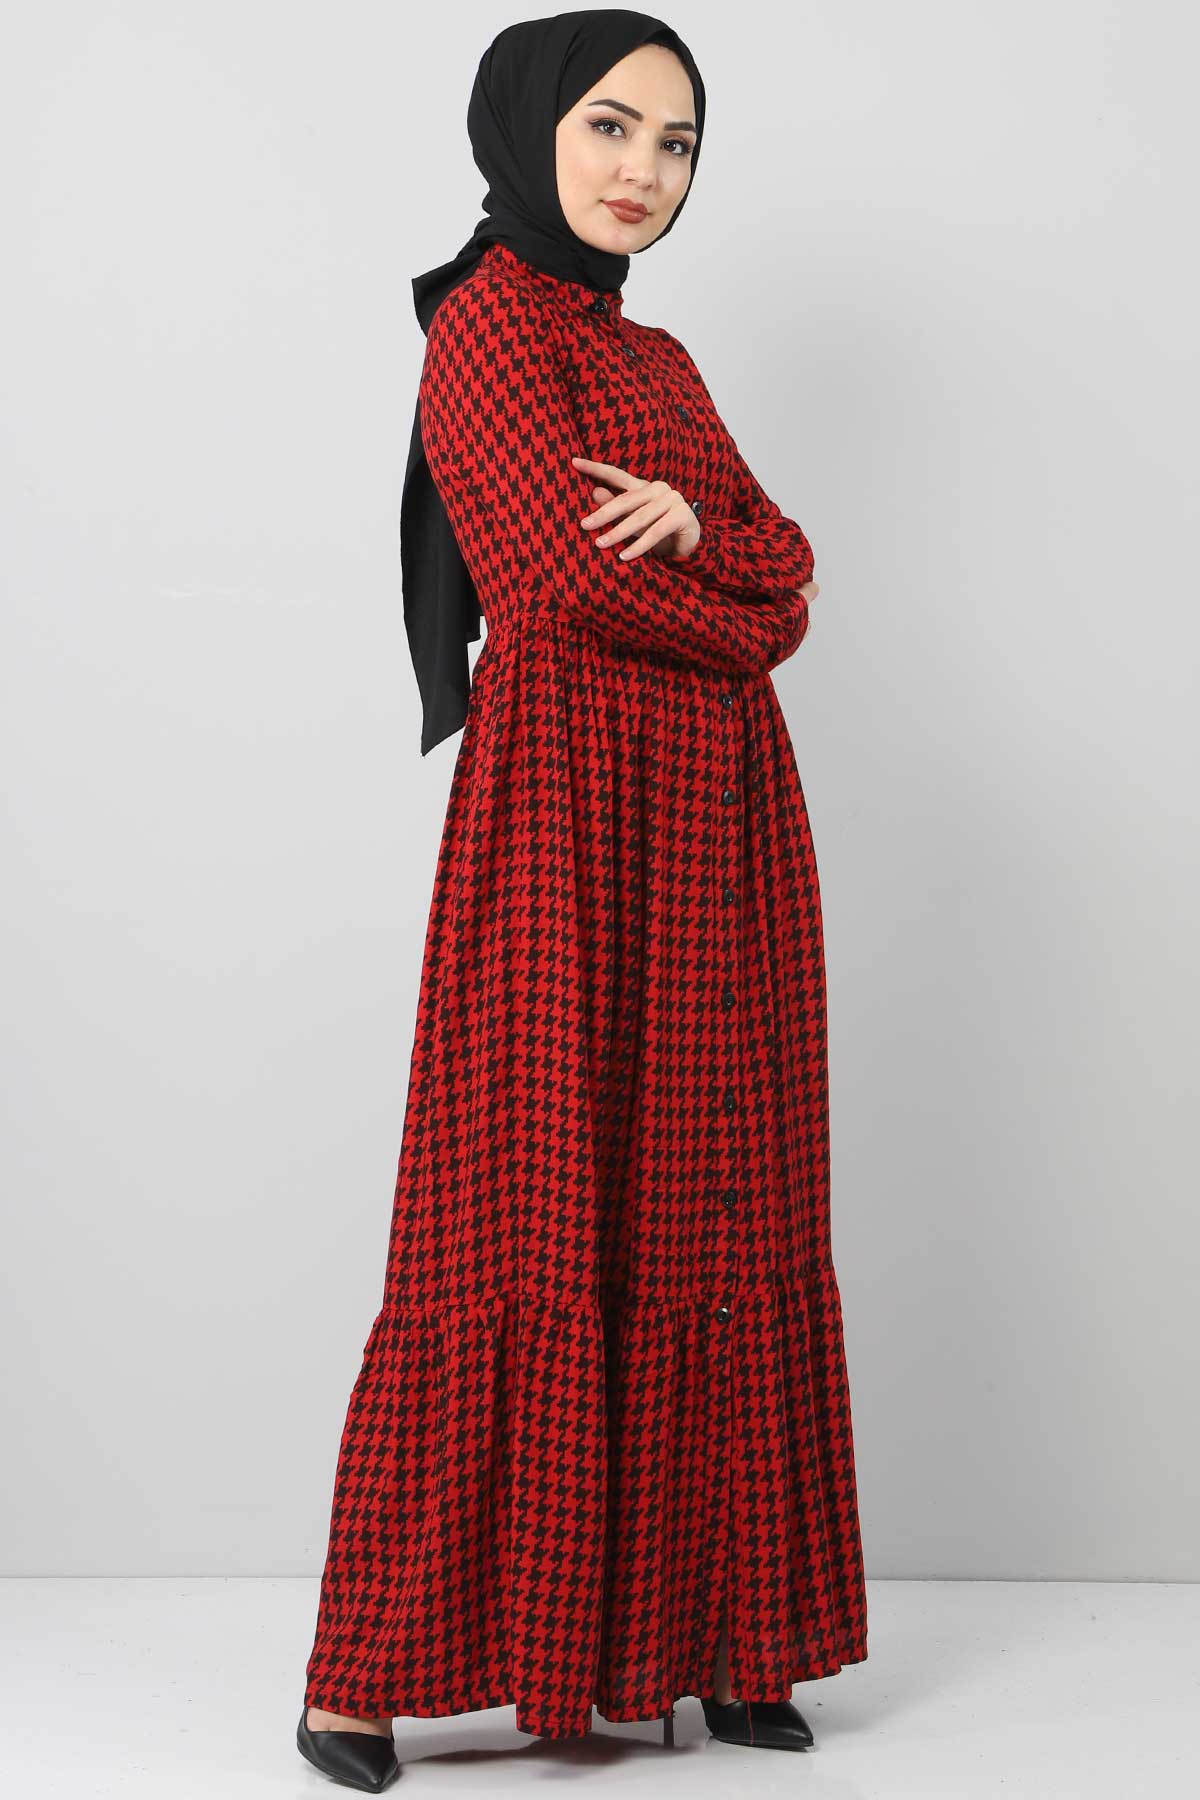 Square Patterned Dress TSD4139 Red